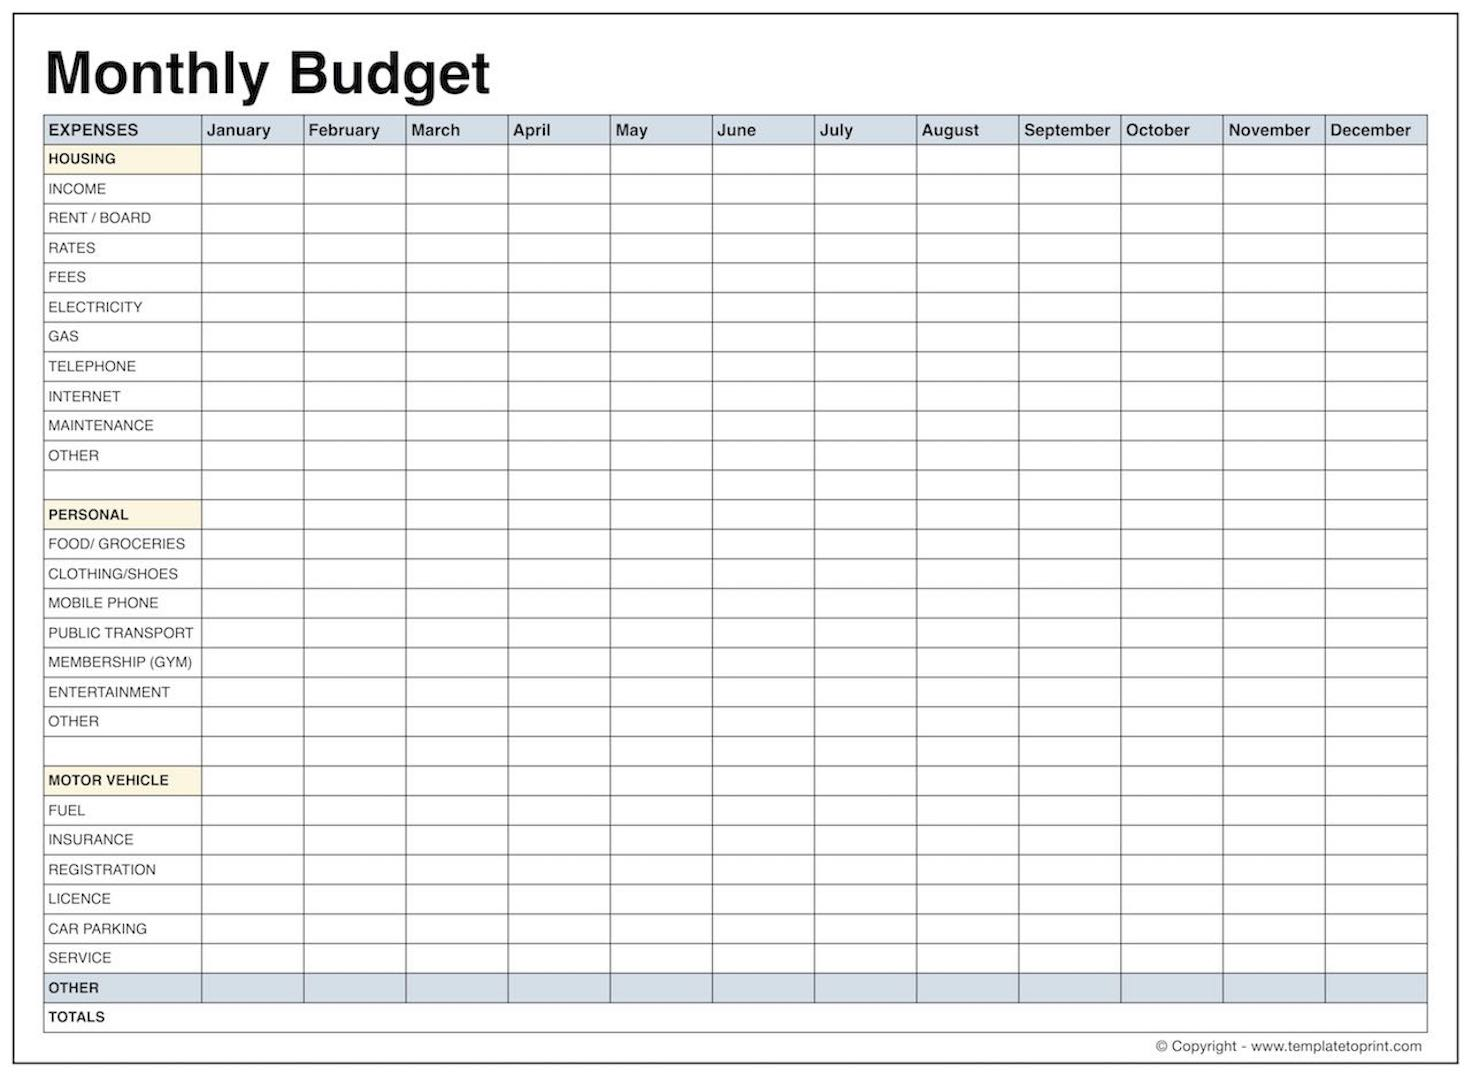 Blank-Monthly-Budget-Template-Pdf